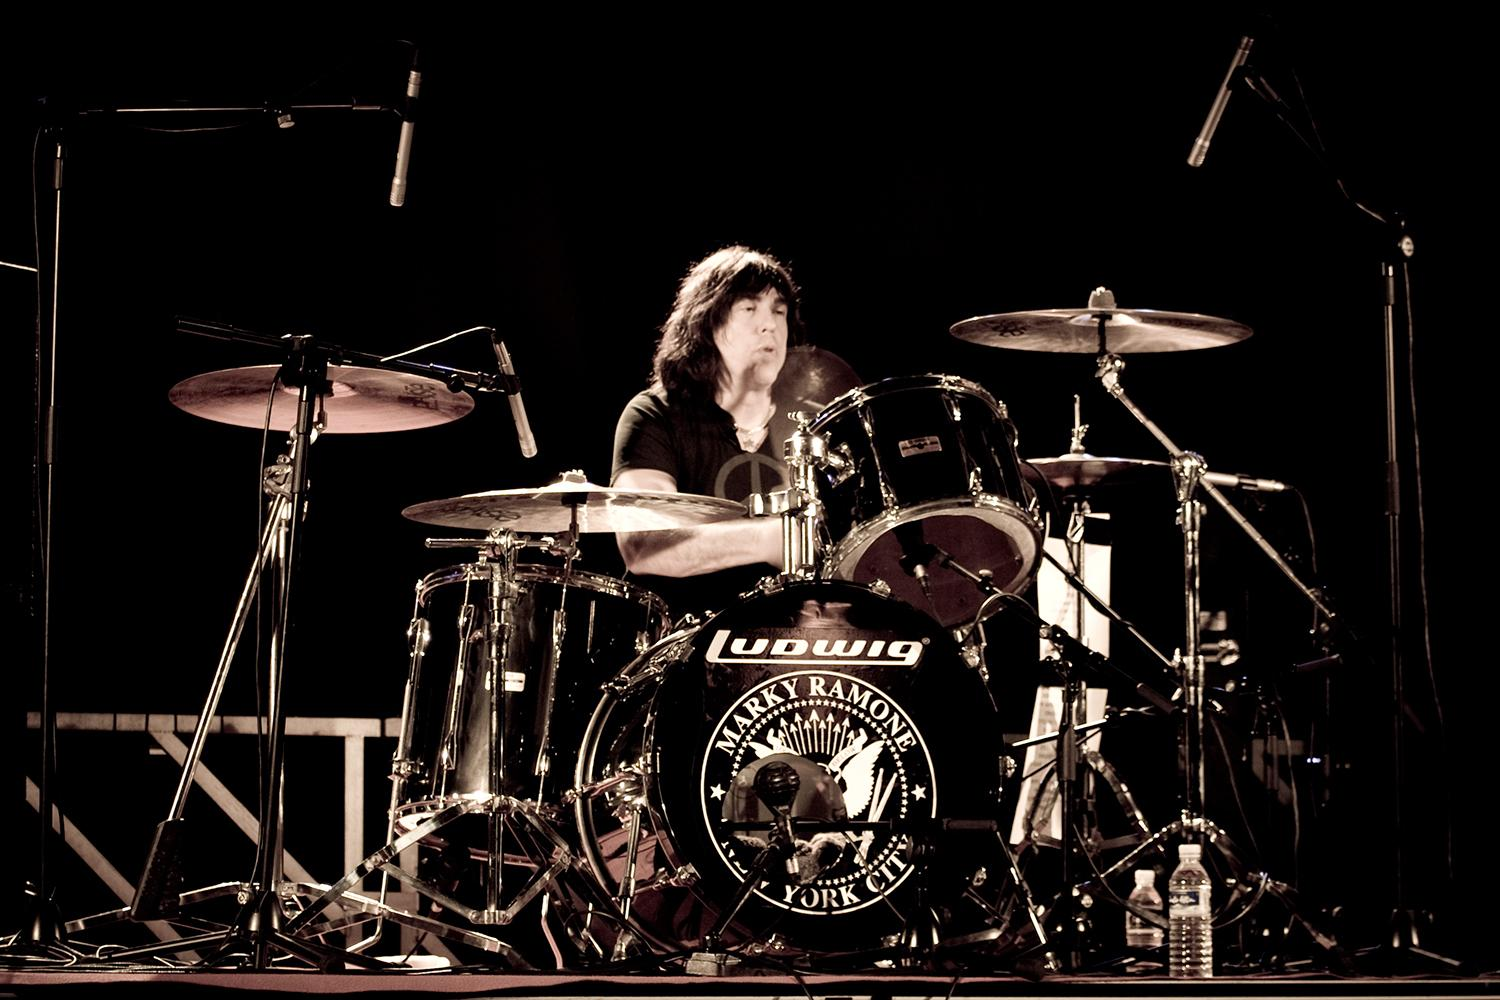 Interview: Marky Ramone on punk rock, hi-res and recording | Digital ...